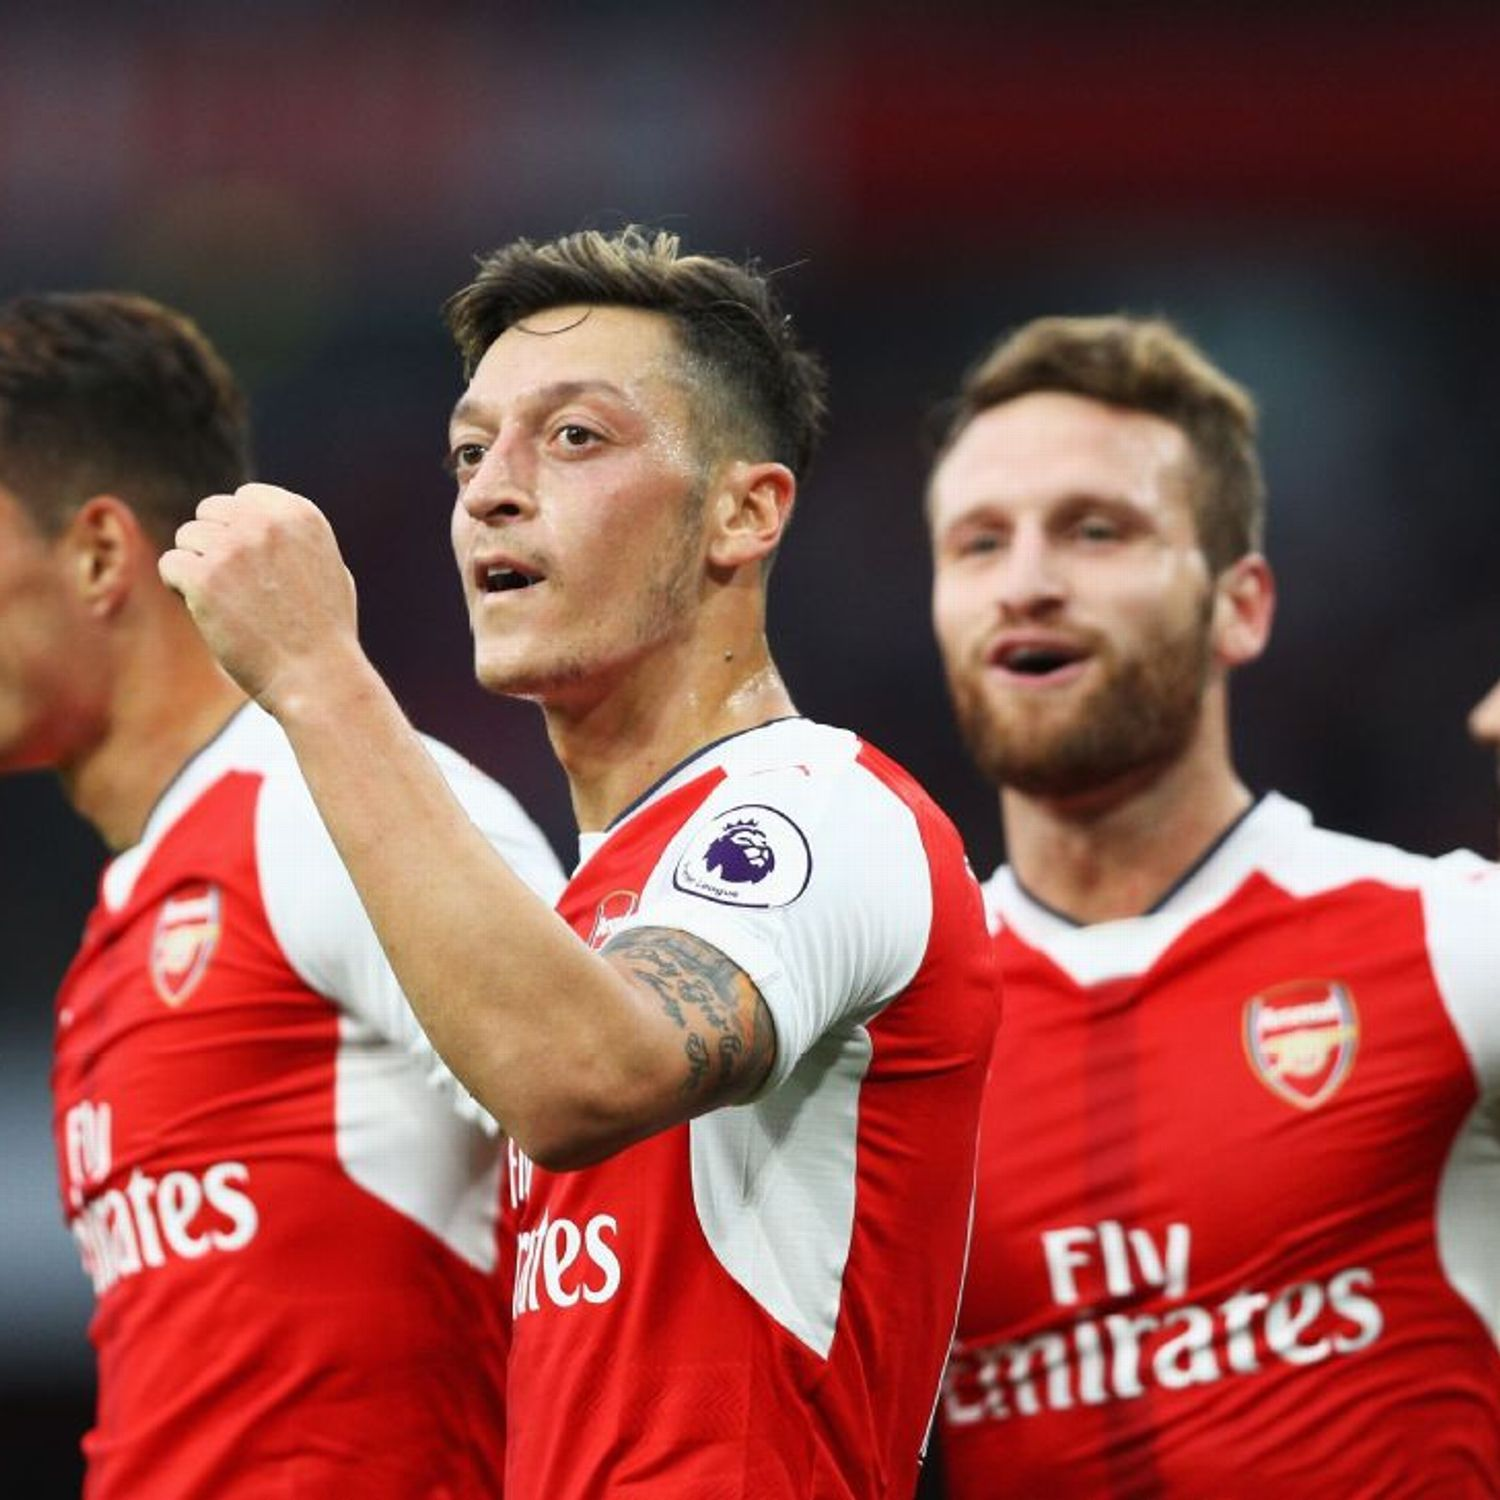 Mesut Ozil's lack of Arsenal assists shows team focus this